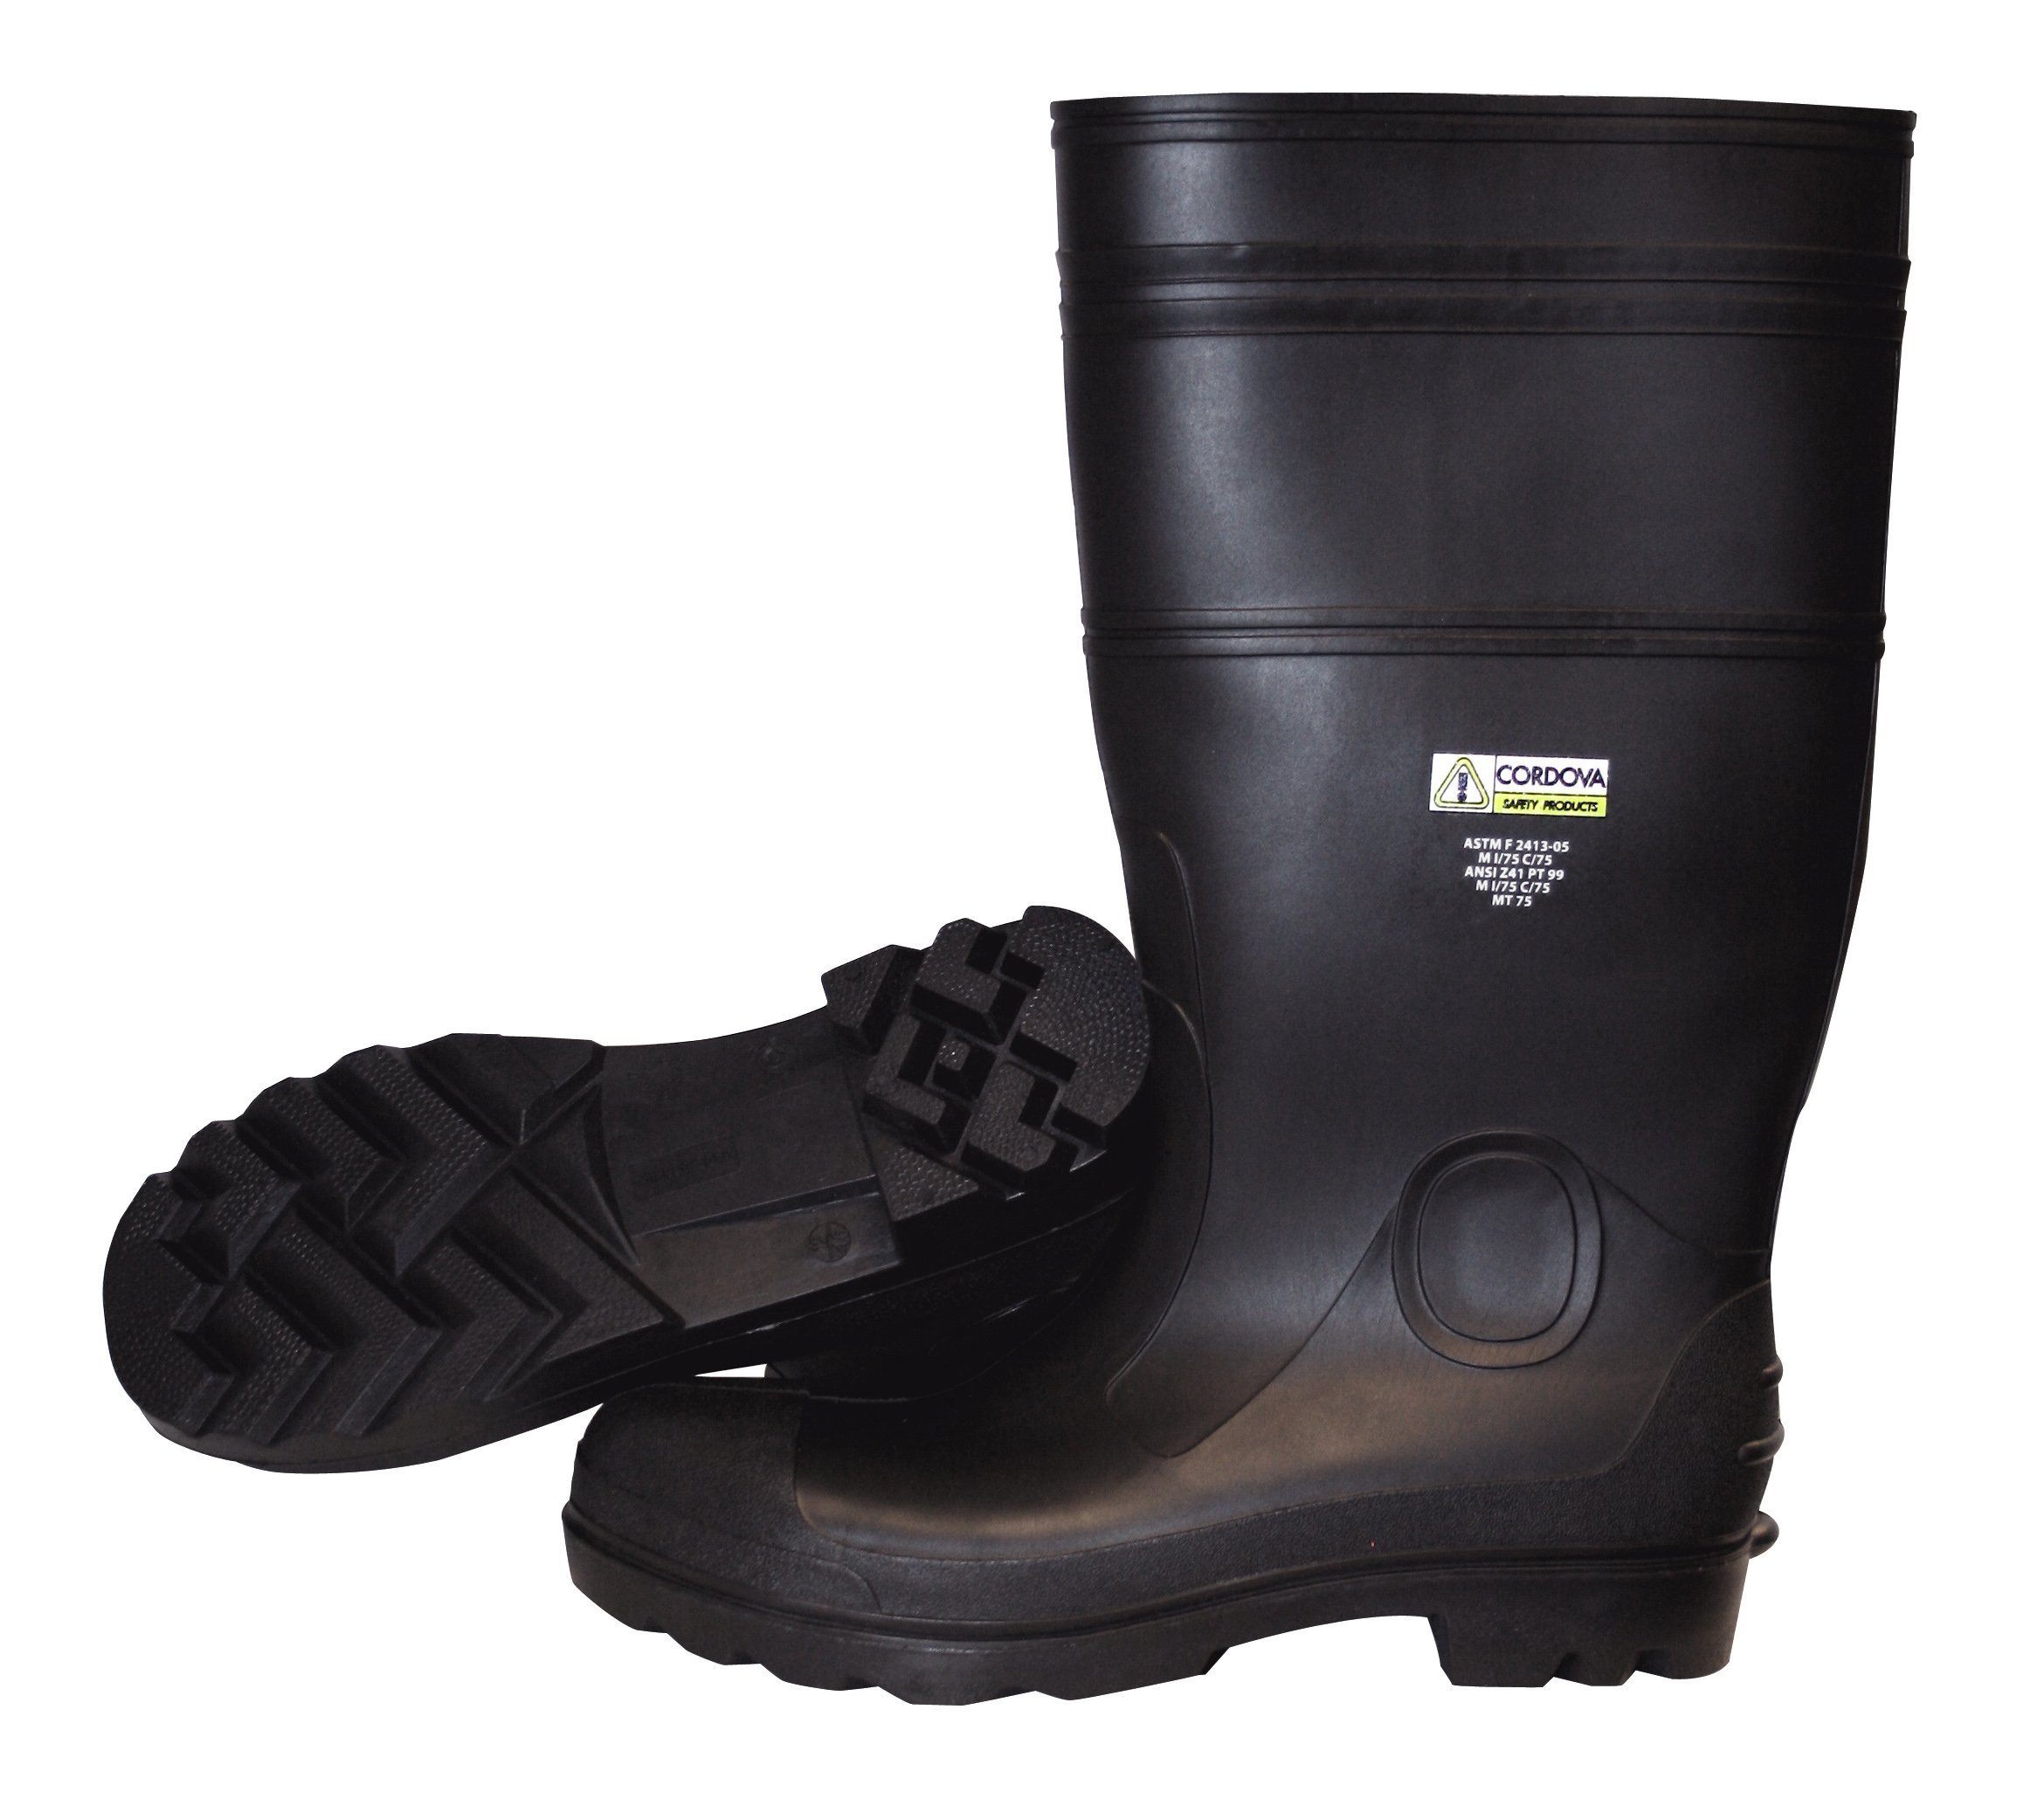 Cordova Safety Products PB2312 Unlined PVC Boots with Black PVC Soles, Size 12, Black